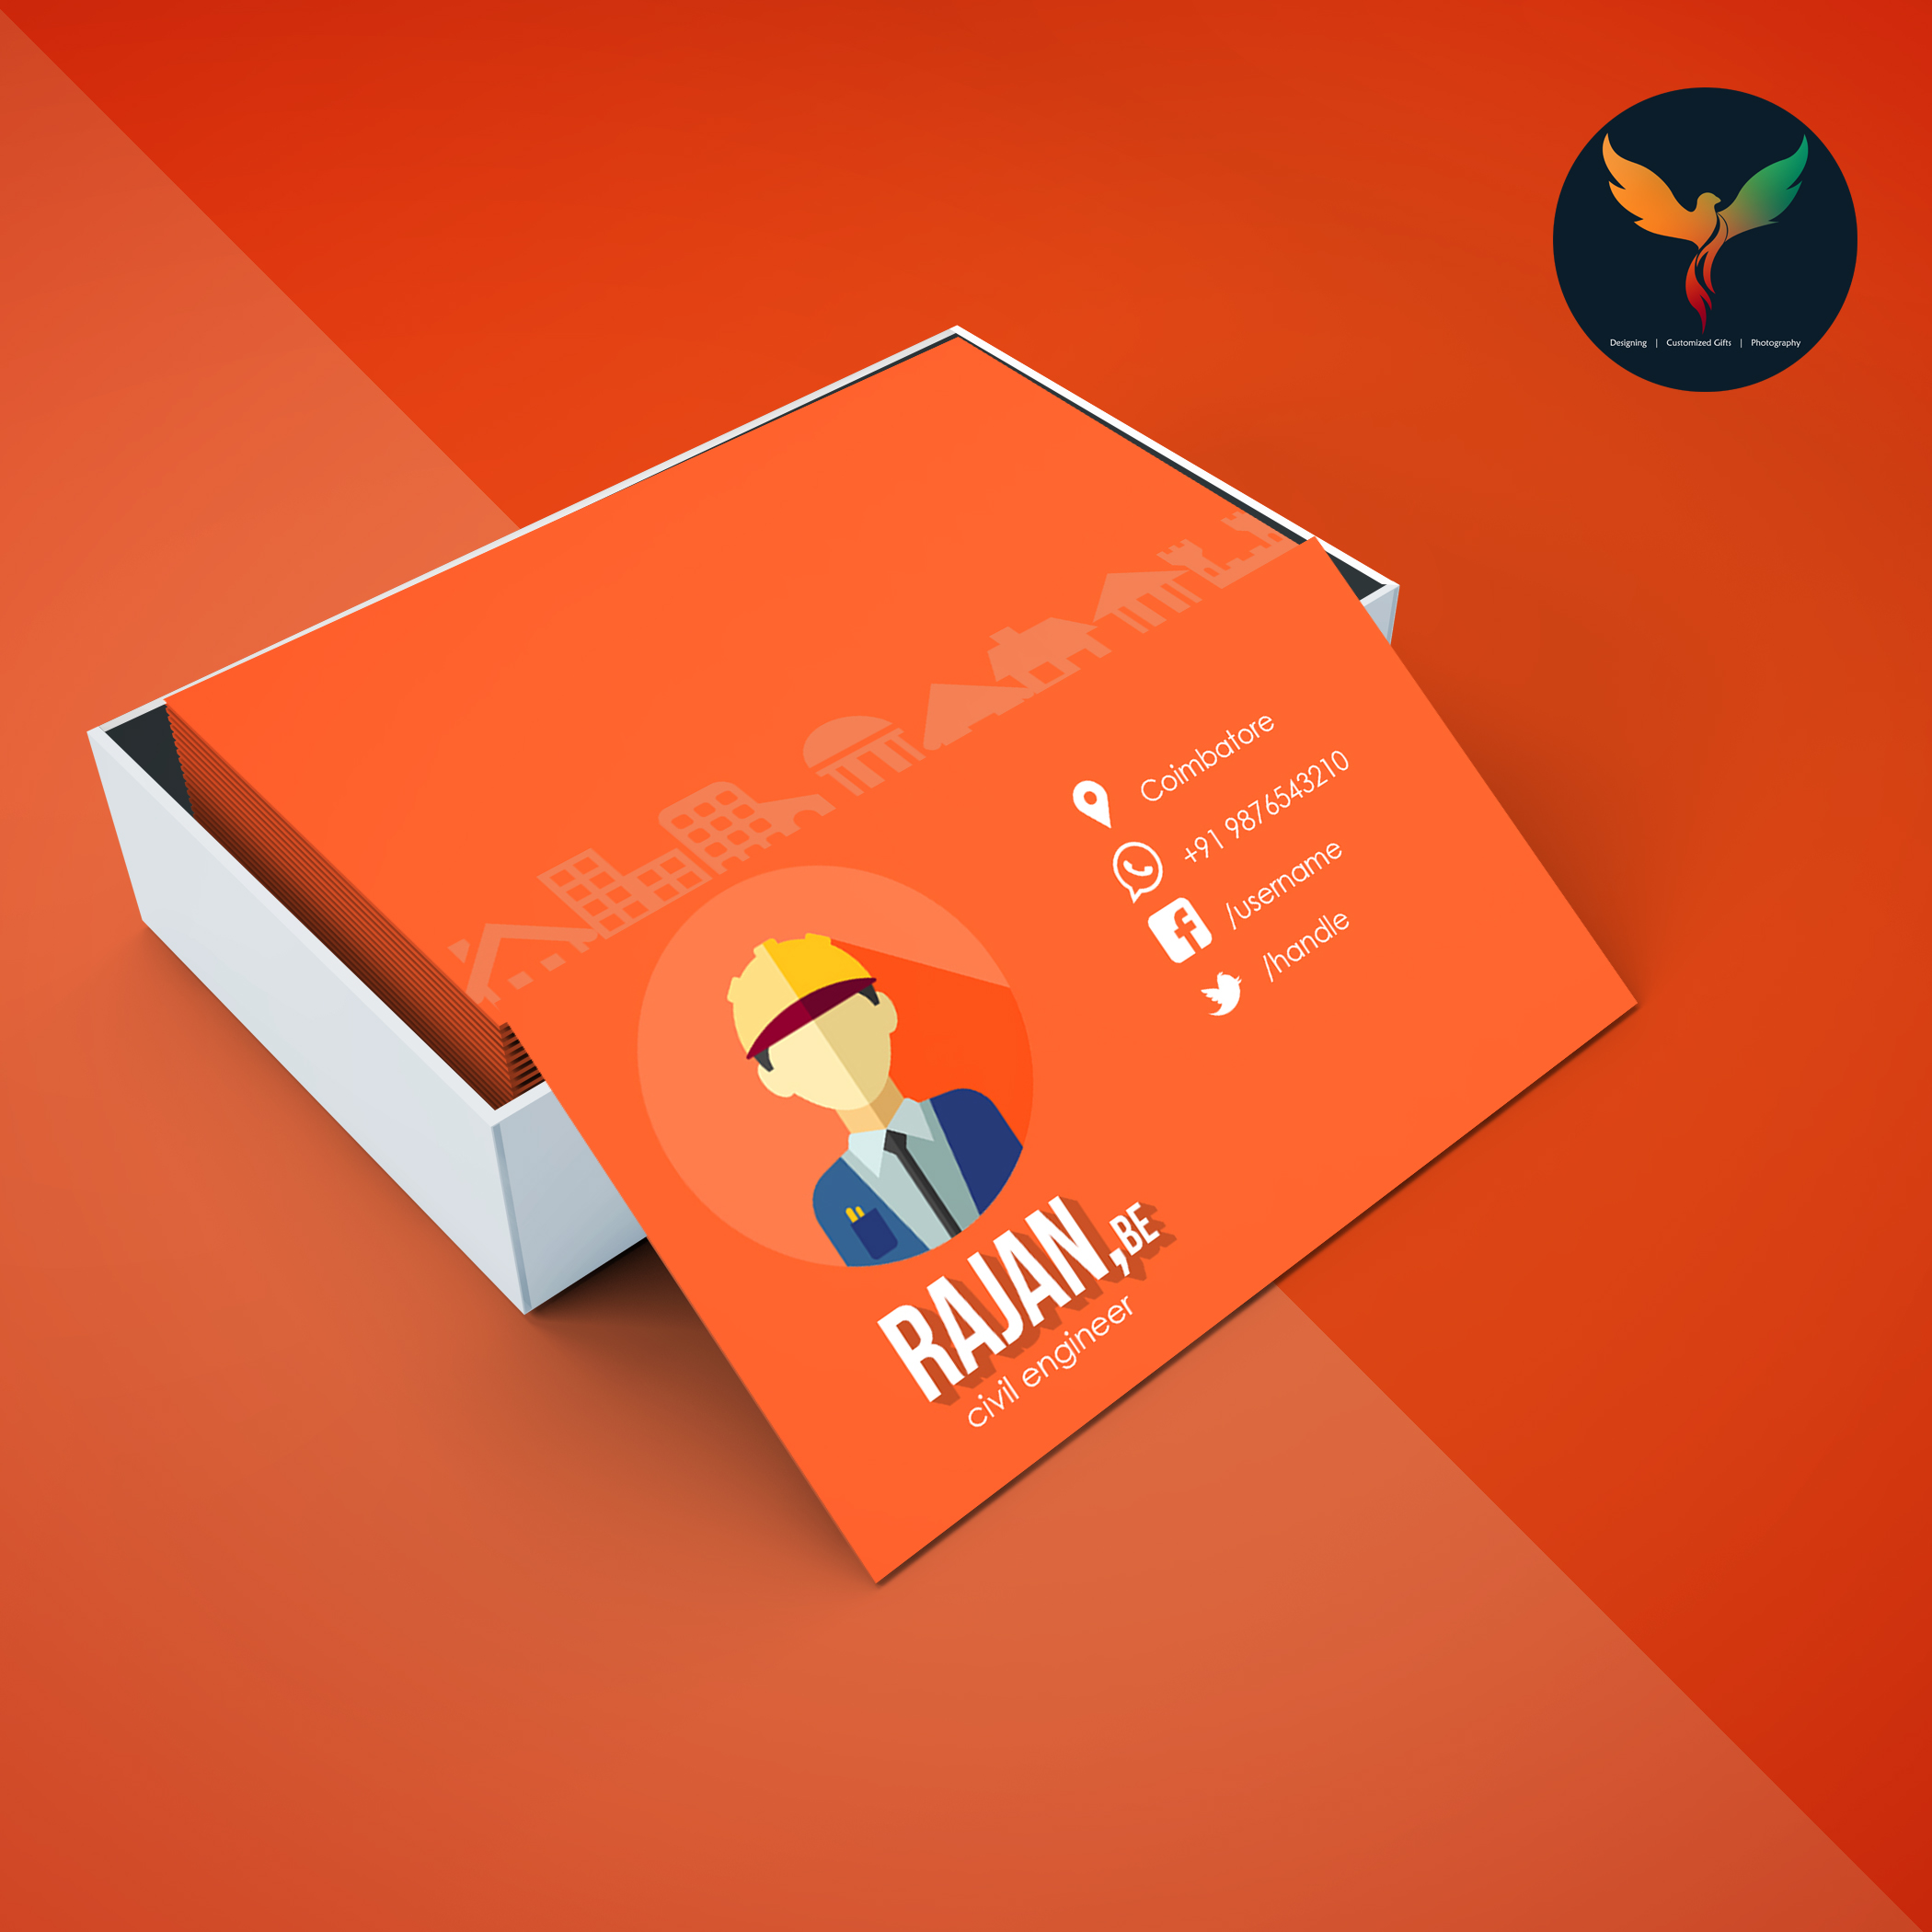 Civil engineer premium business card template by phoenixprithivi civil engineer premium business card template by phoenixprithivi magicingreecefo Image collections